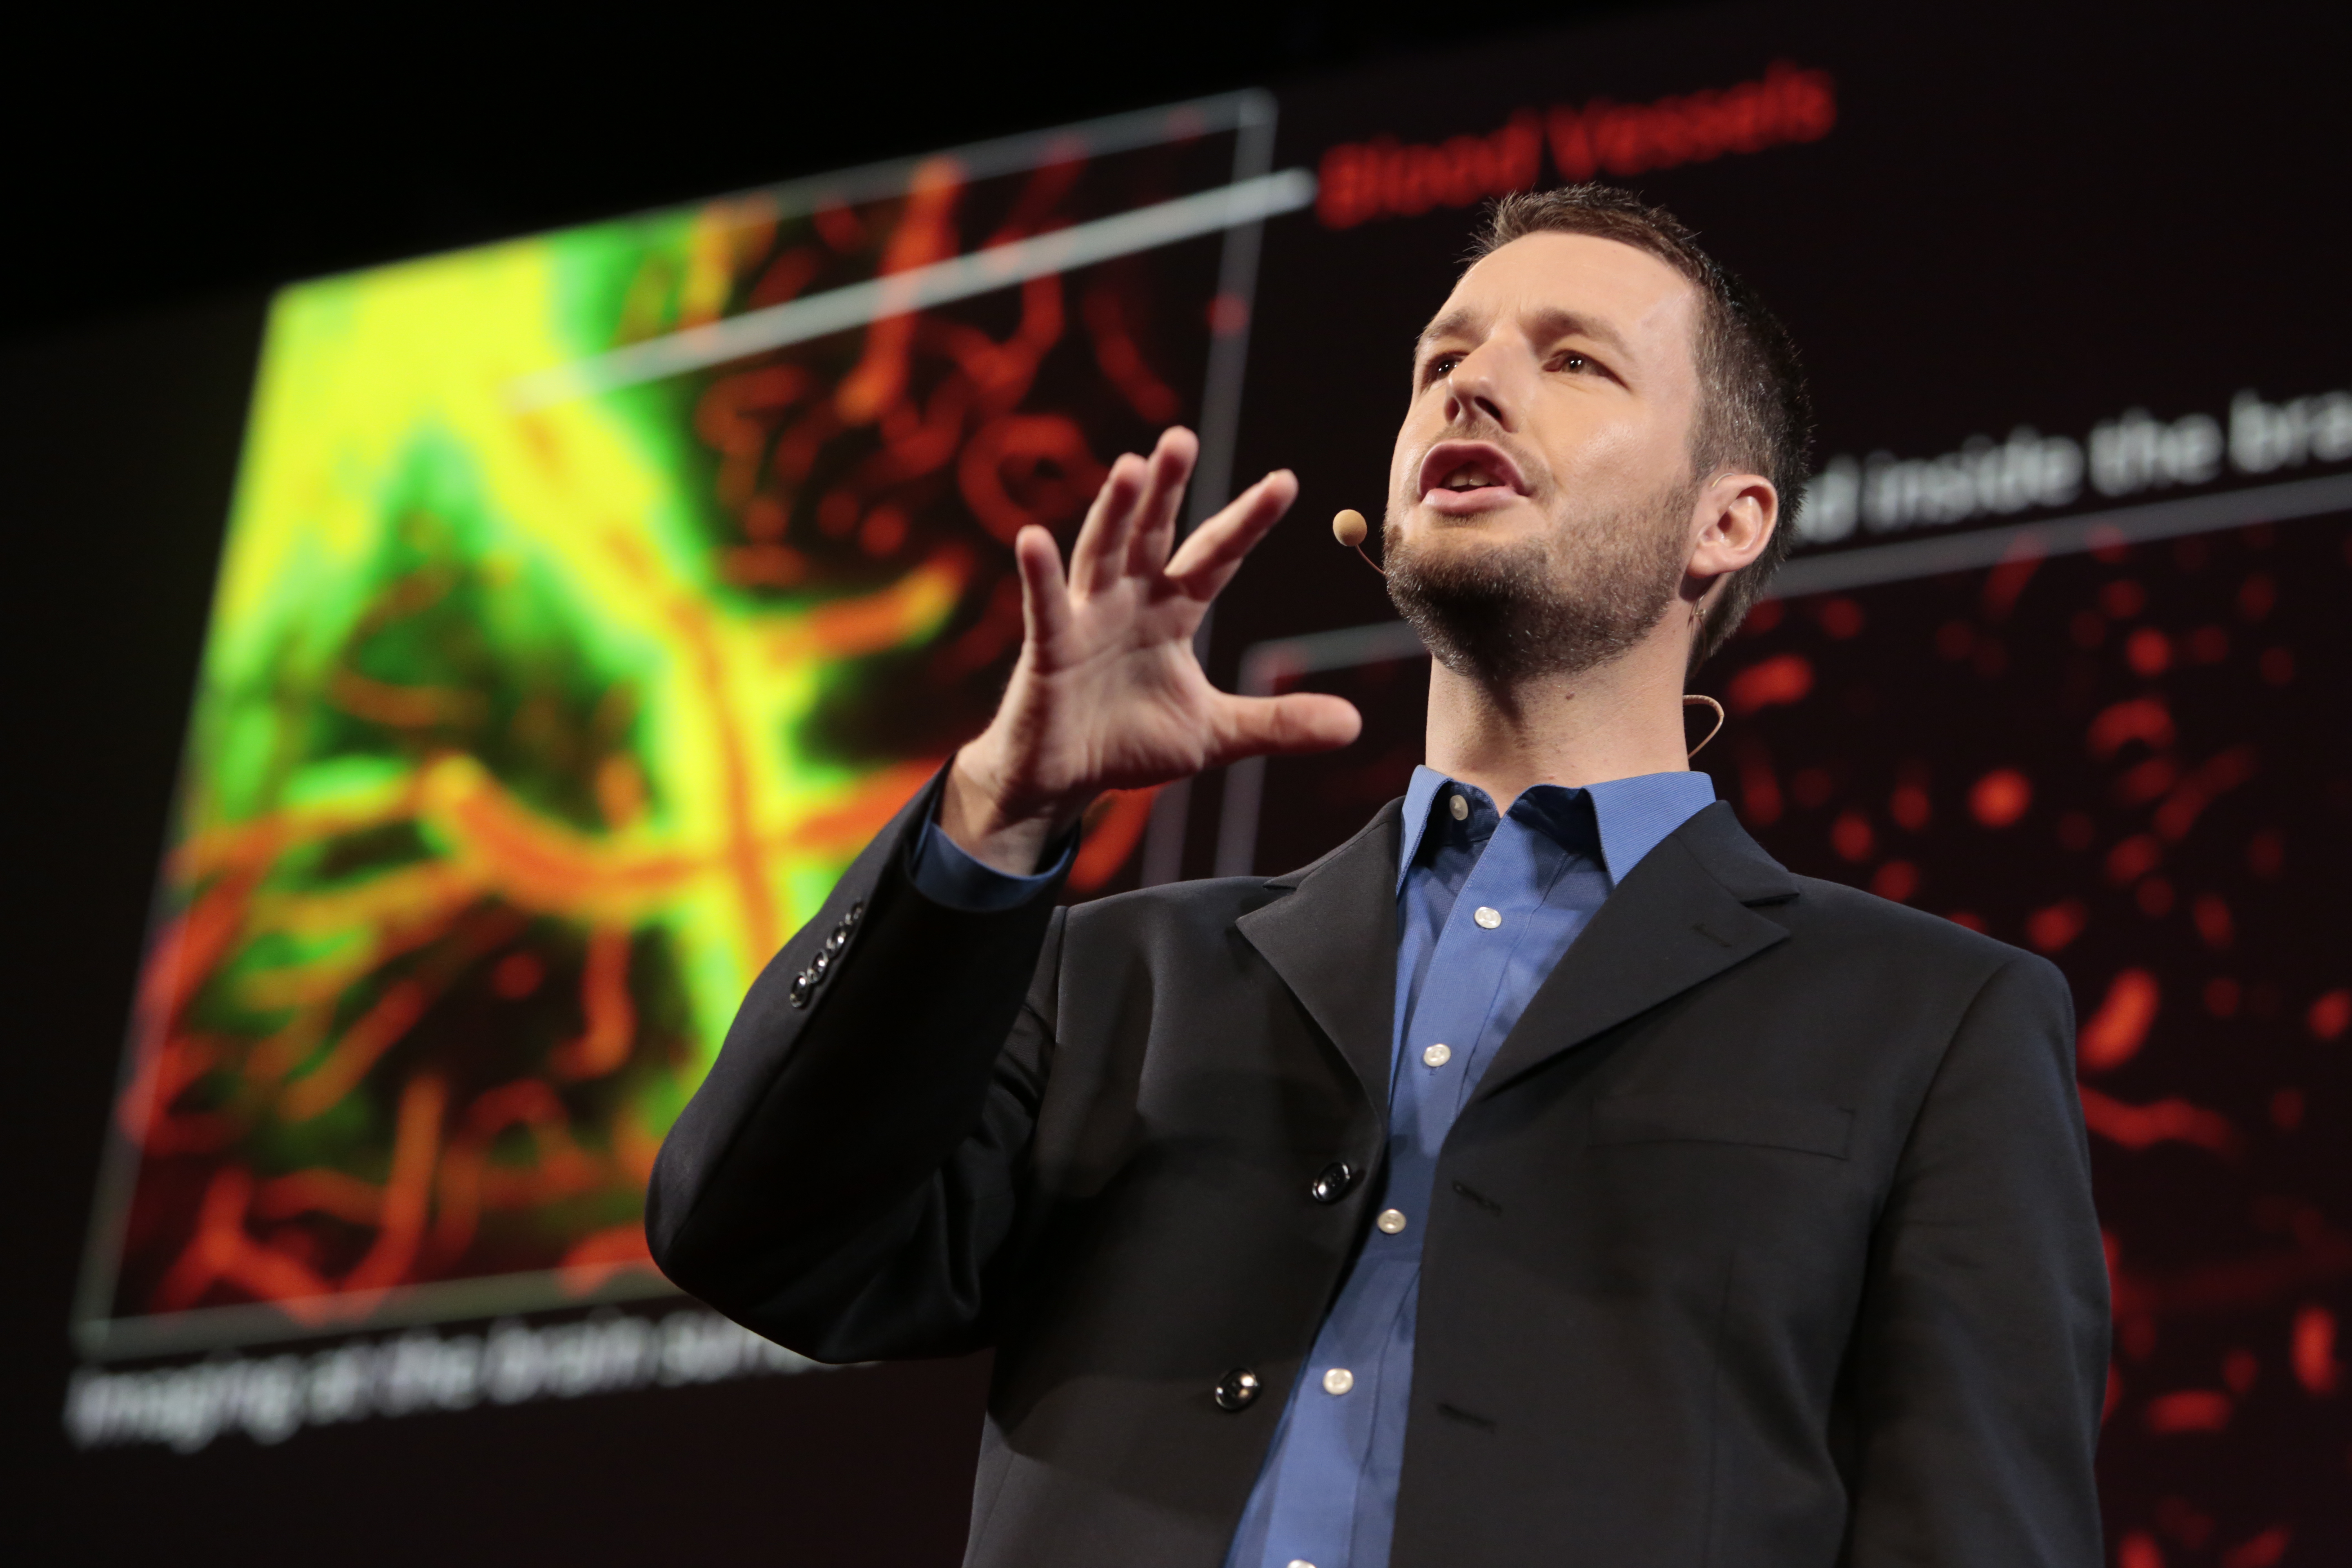 TEDMED highlights contrast powers of the body with human frailty (video)